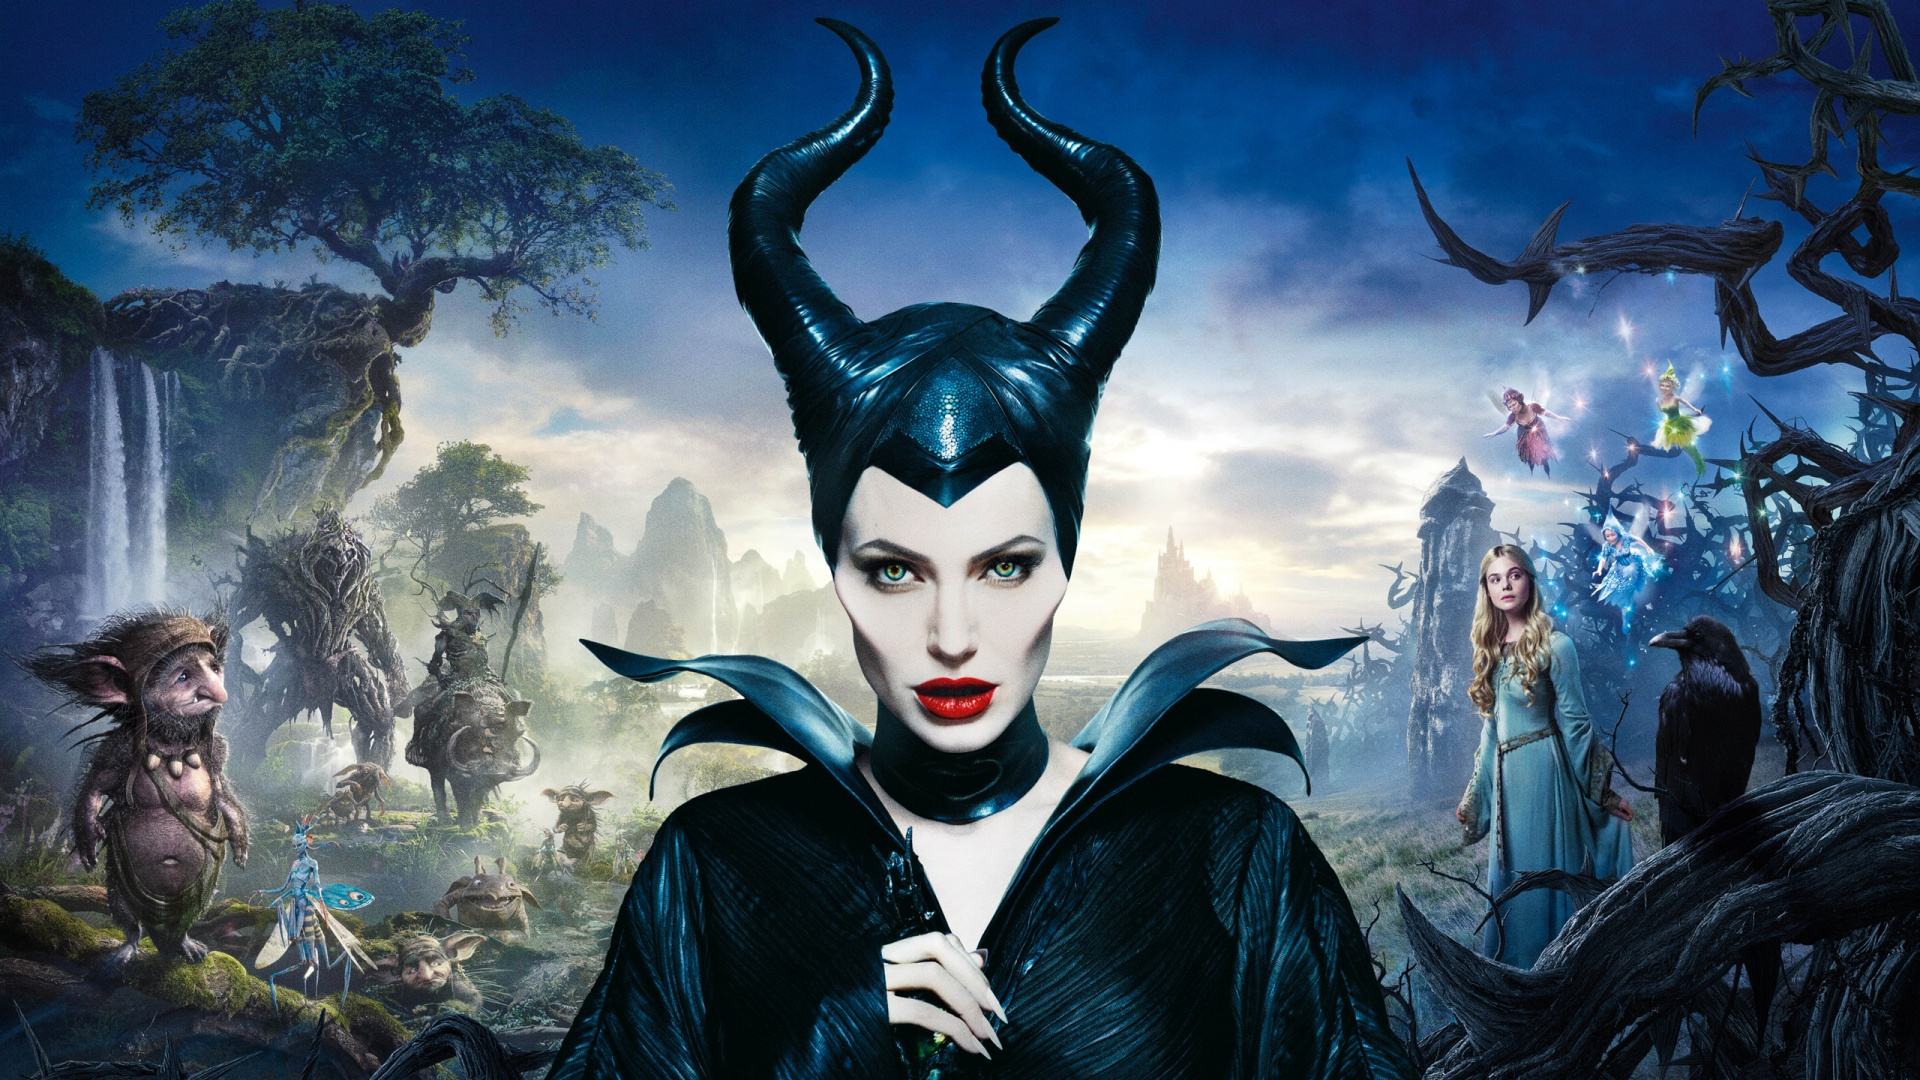 Angelina Jolie In Maleficent Wallpapers In Jpg Format For